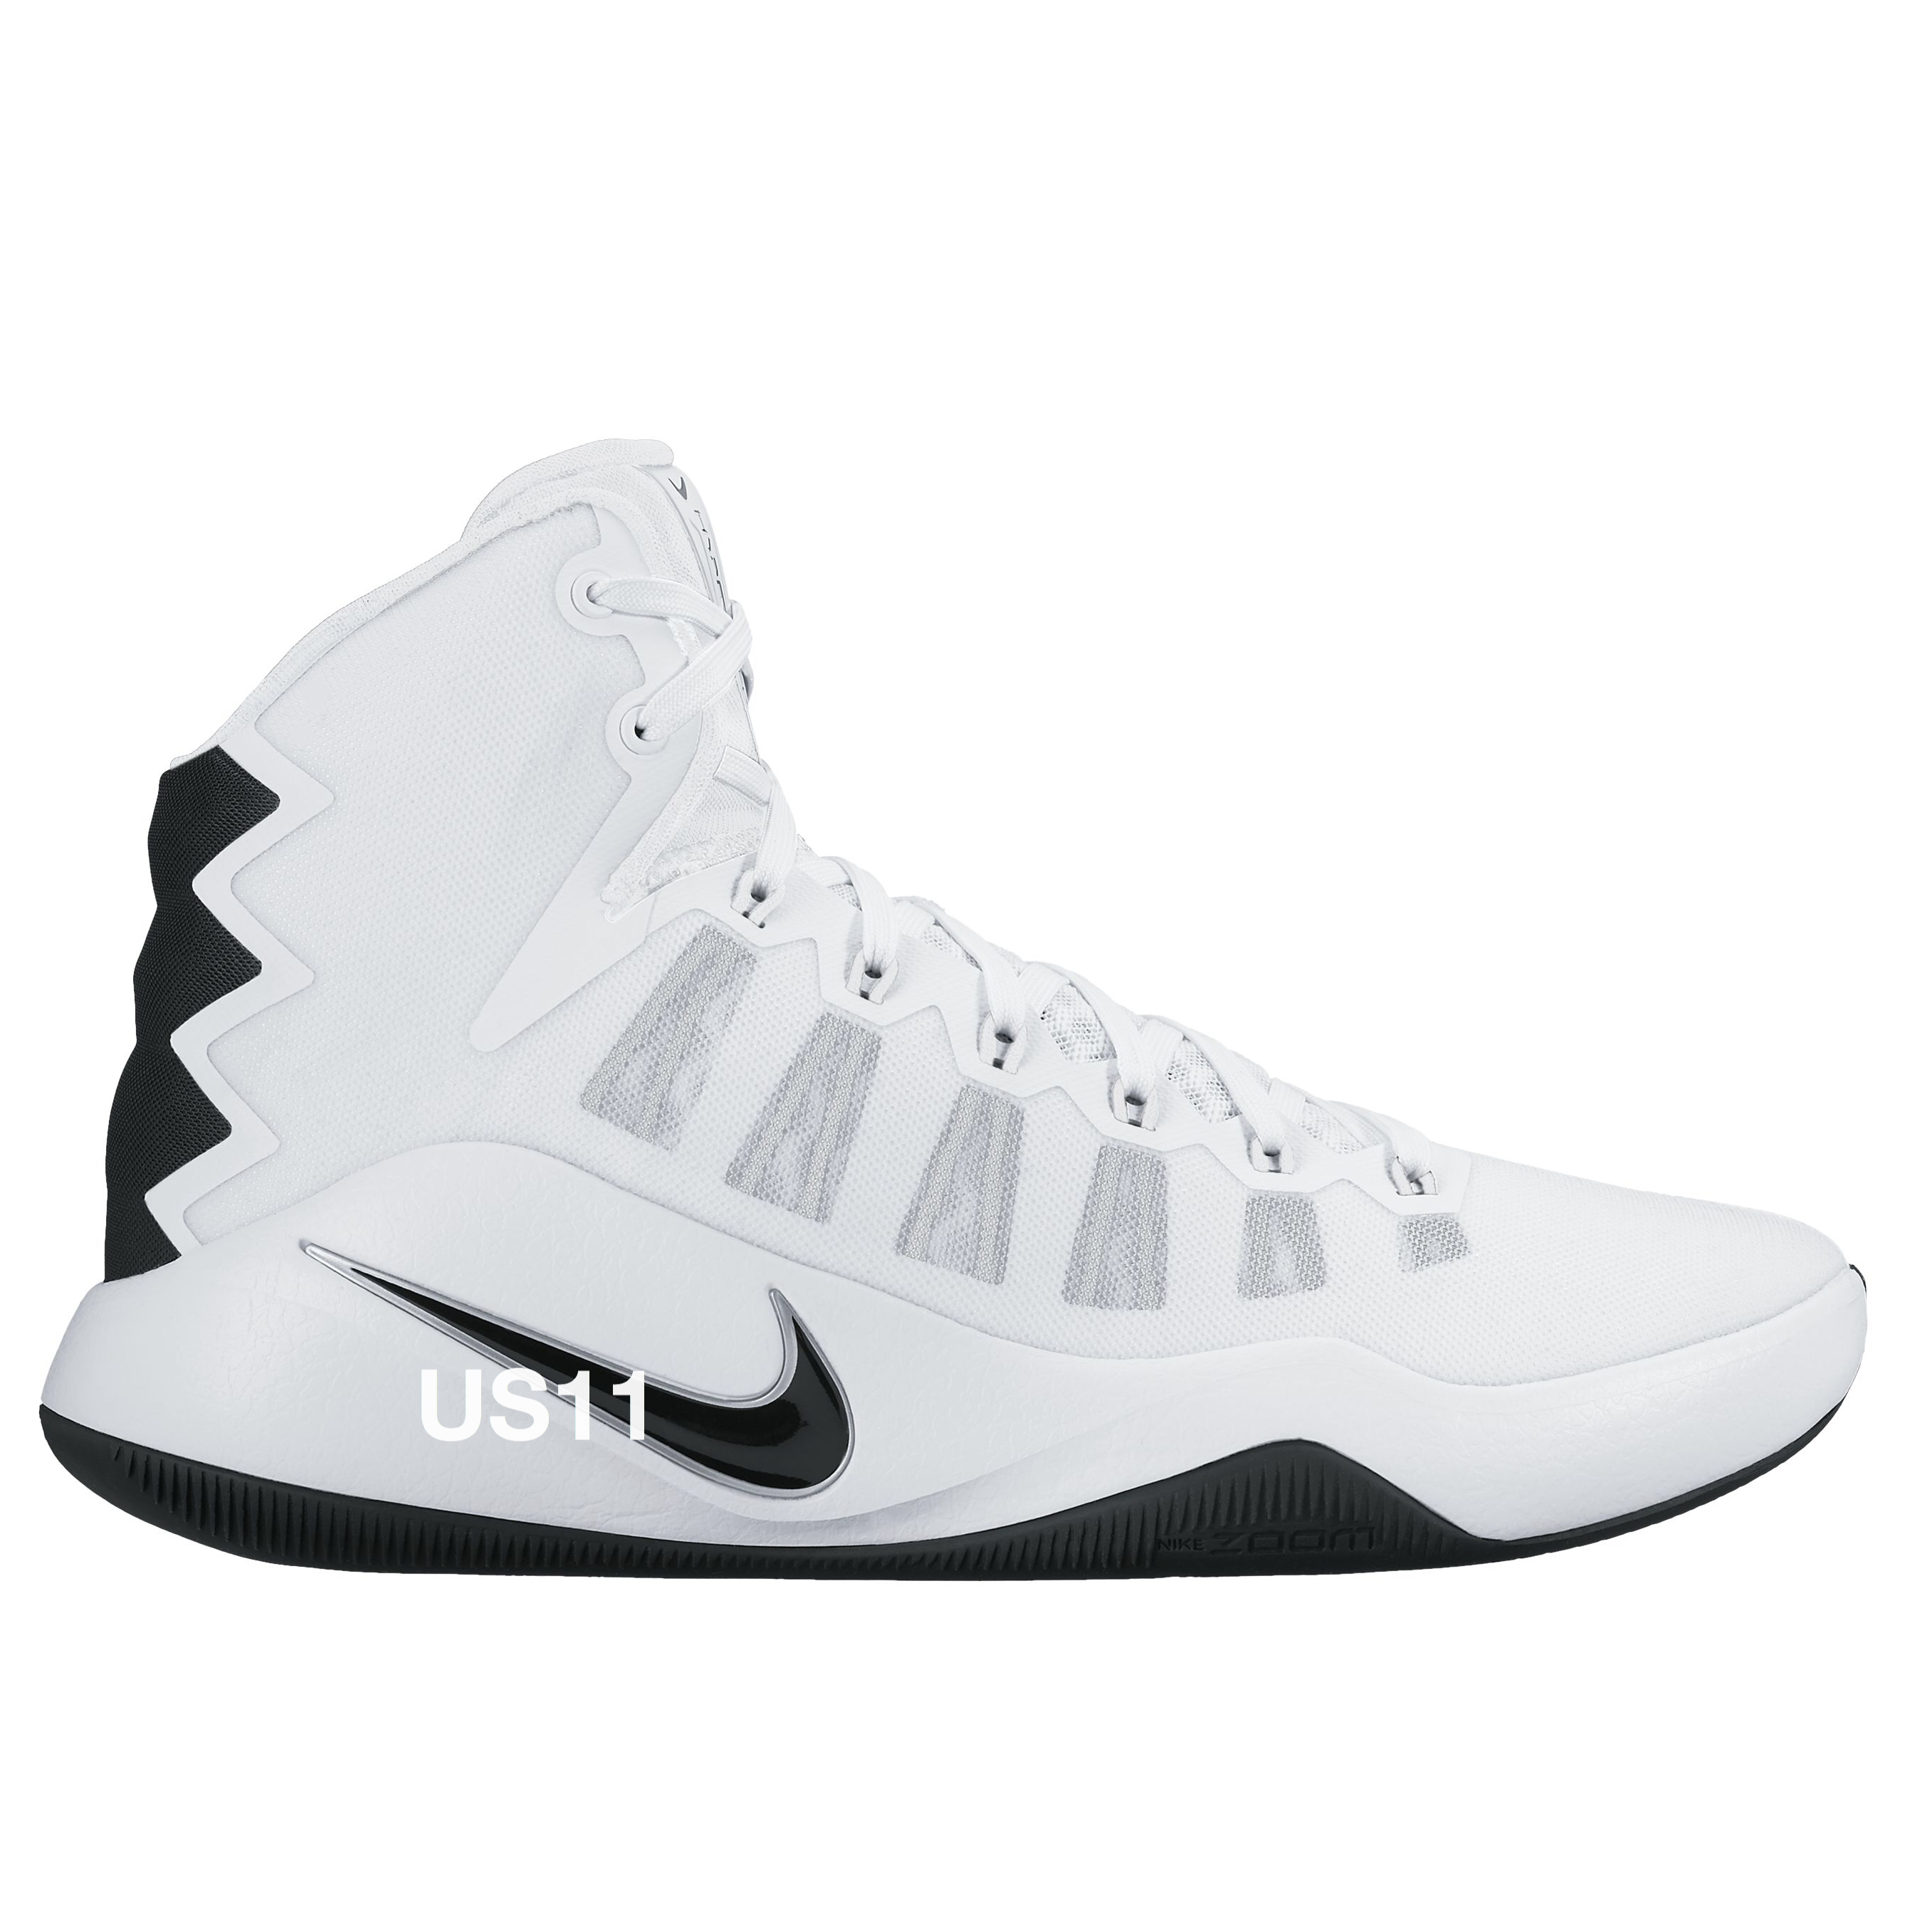 03acf1f79cf Basketball   Kicks On Court   Nike ...